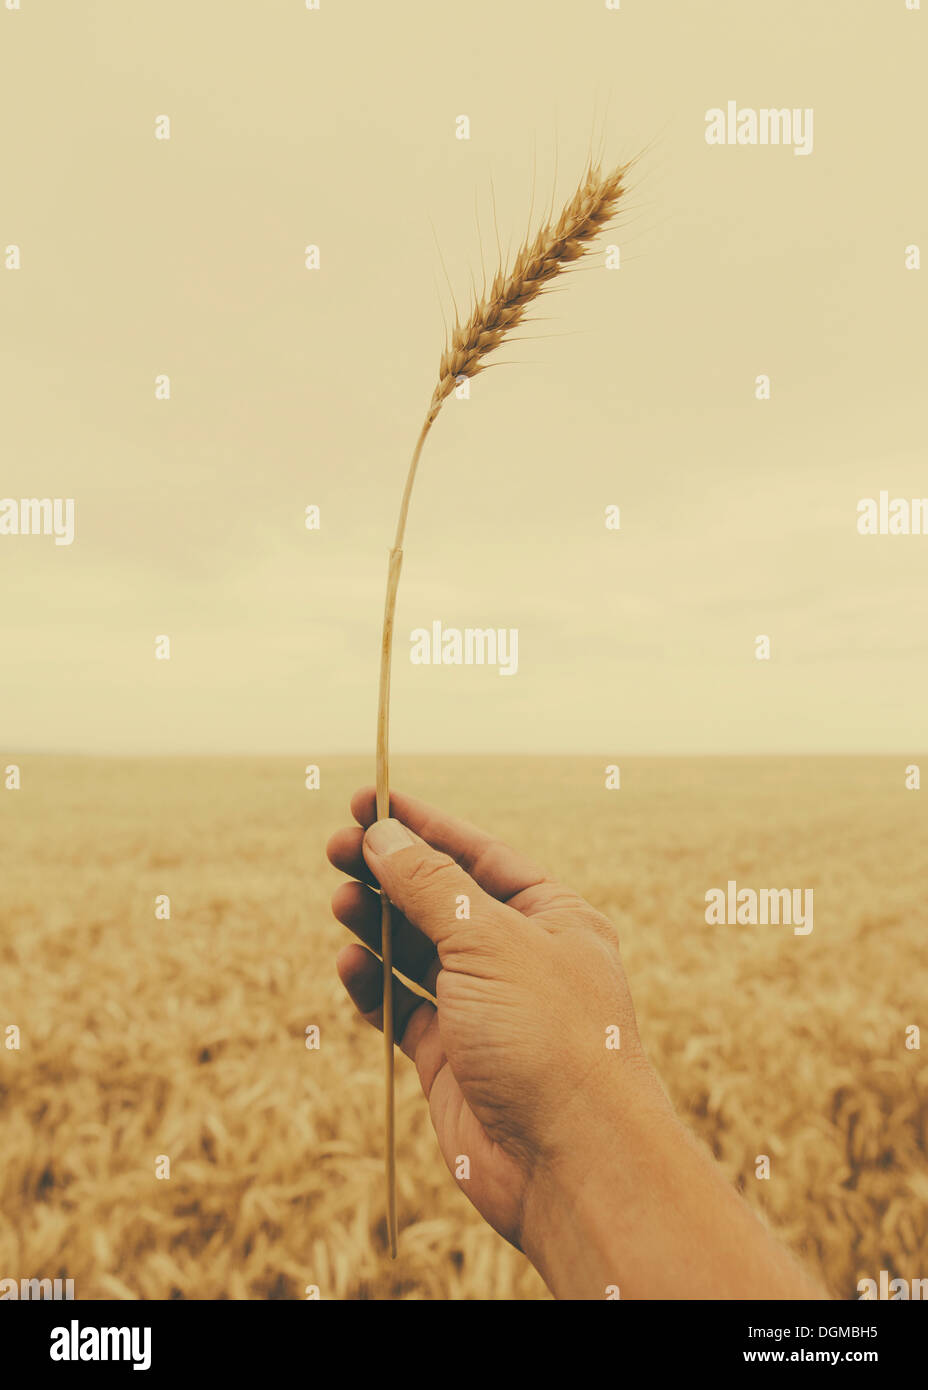 A human hand holding a stalk of wheat with a ripening ear at the top. - Stock Image